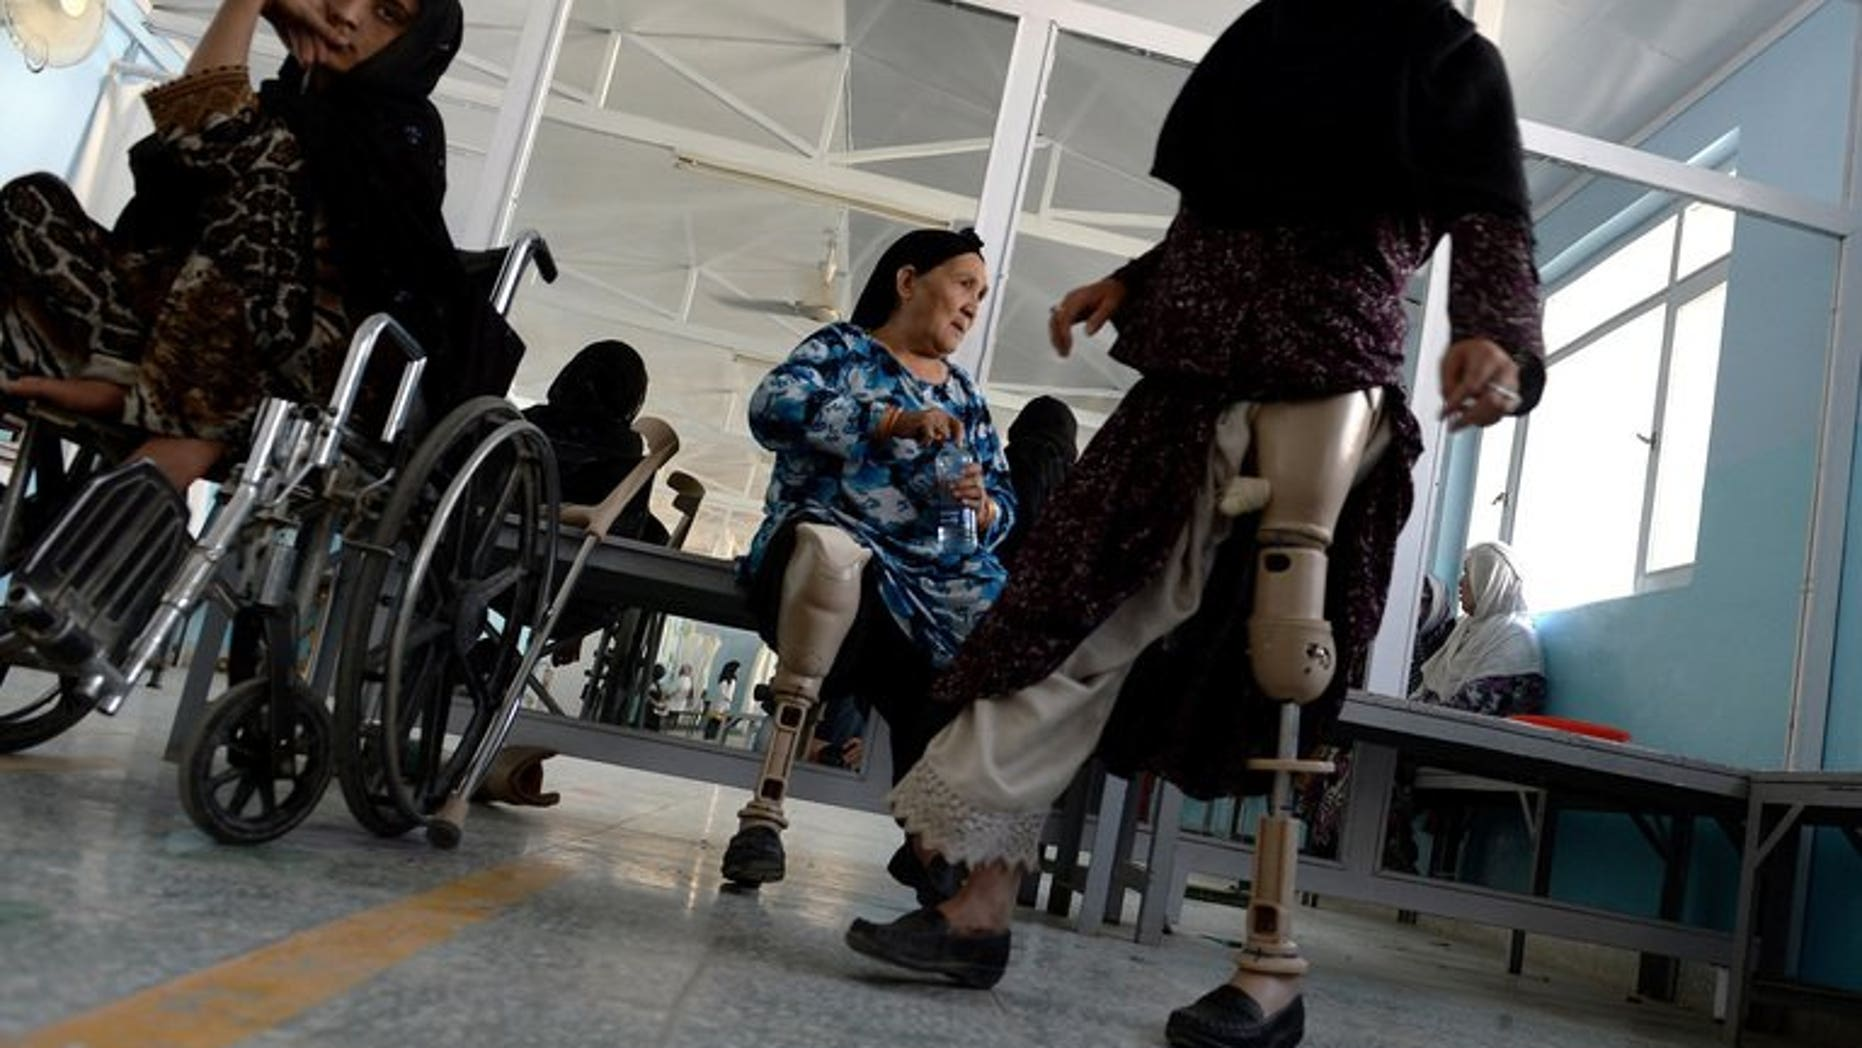 An Afghan amputee practices walking with her prosthetic leg at one of the International Committee of the Red Cross (ICRC) hospitals for war victims and the disabled in Kabul June 5, 2013. The Red Cross said Tuesday it will shut down three of its 17 offices in Afghanistan, two months after an unprecedented militant attack on the organisation.